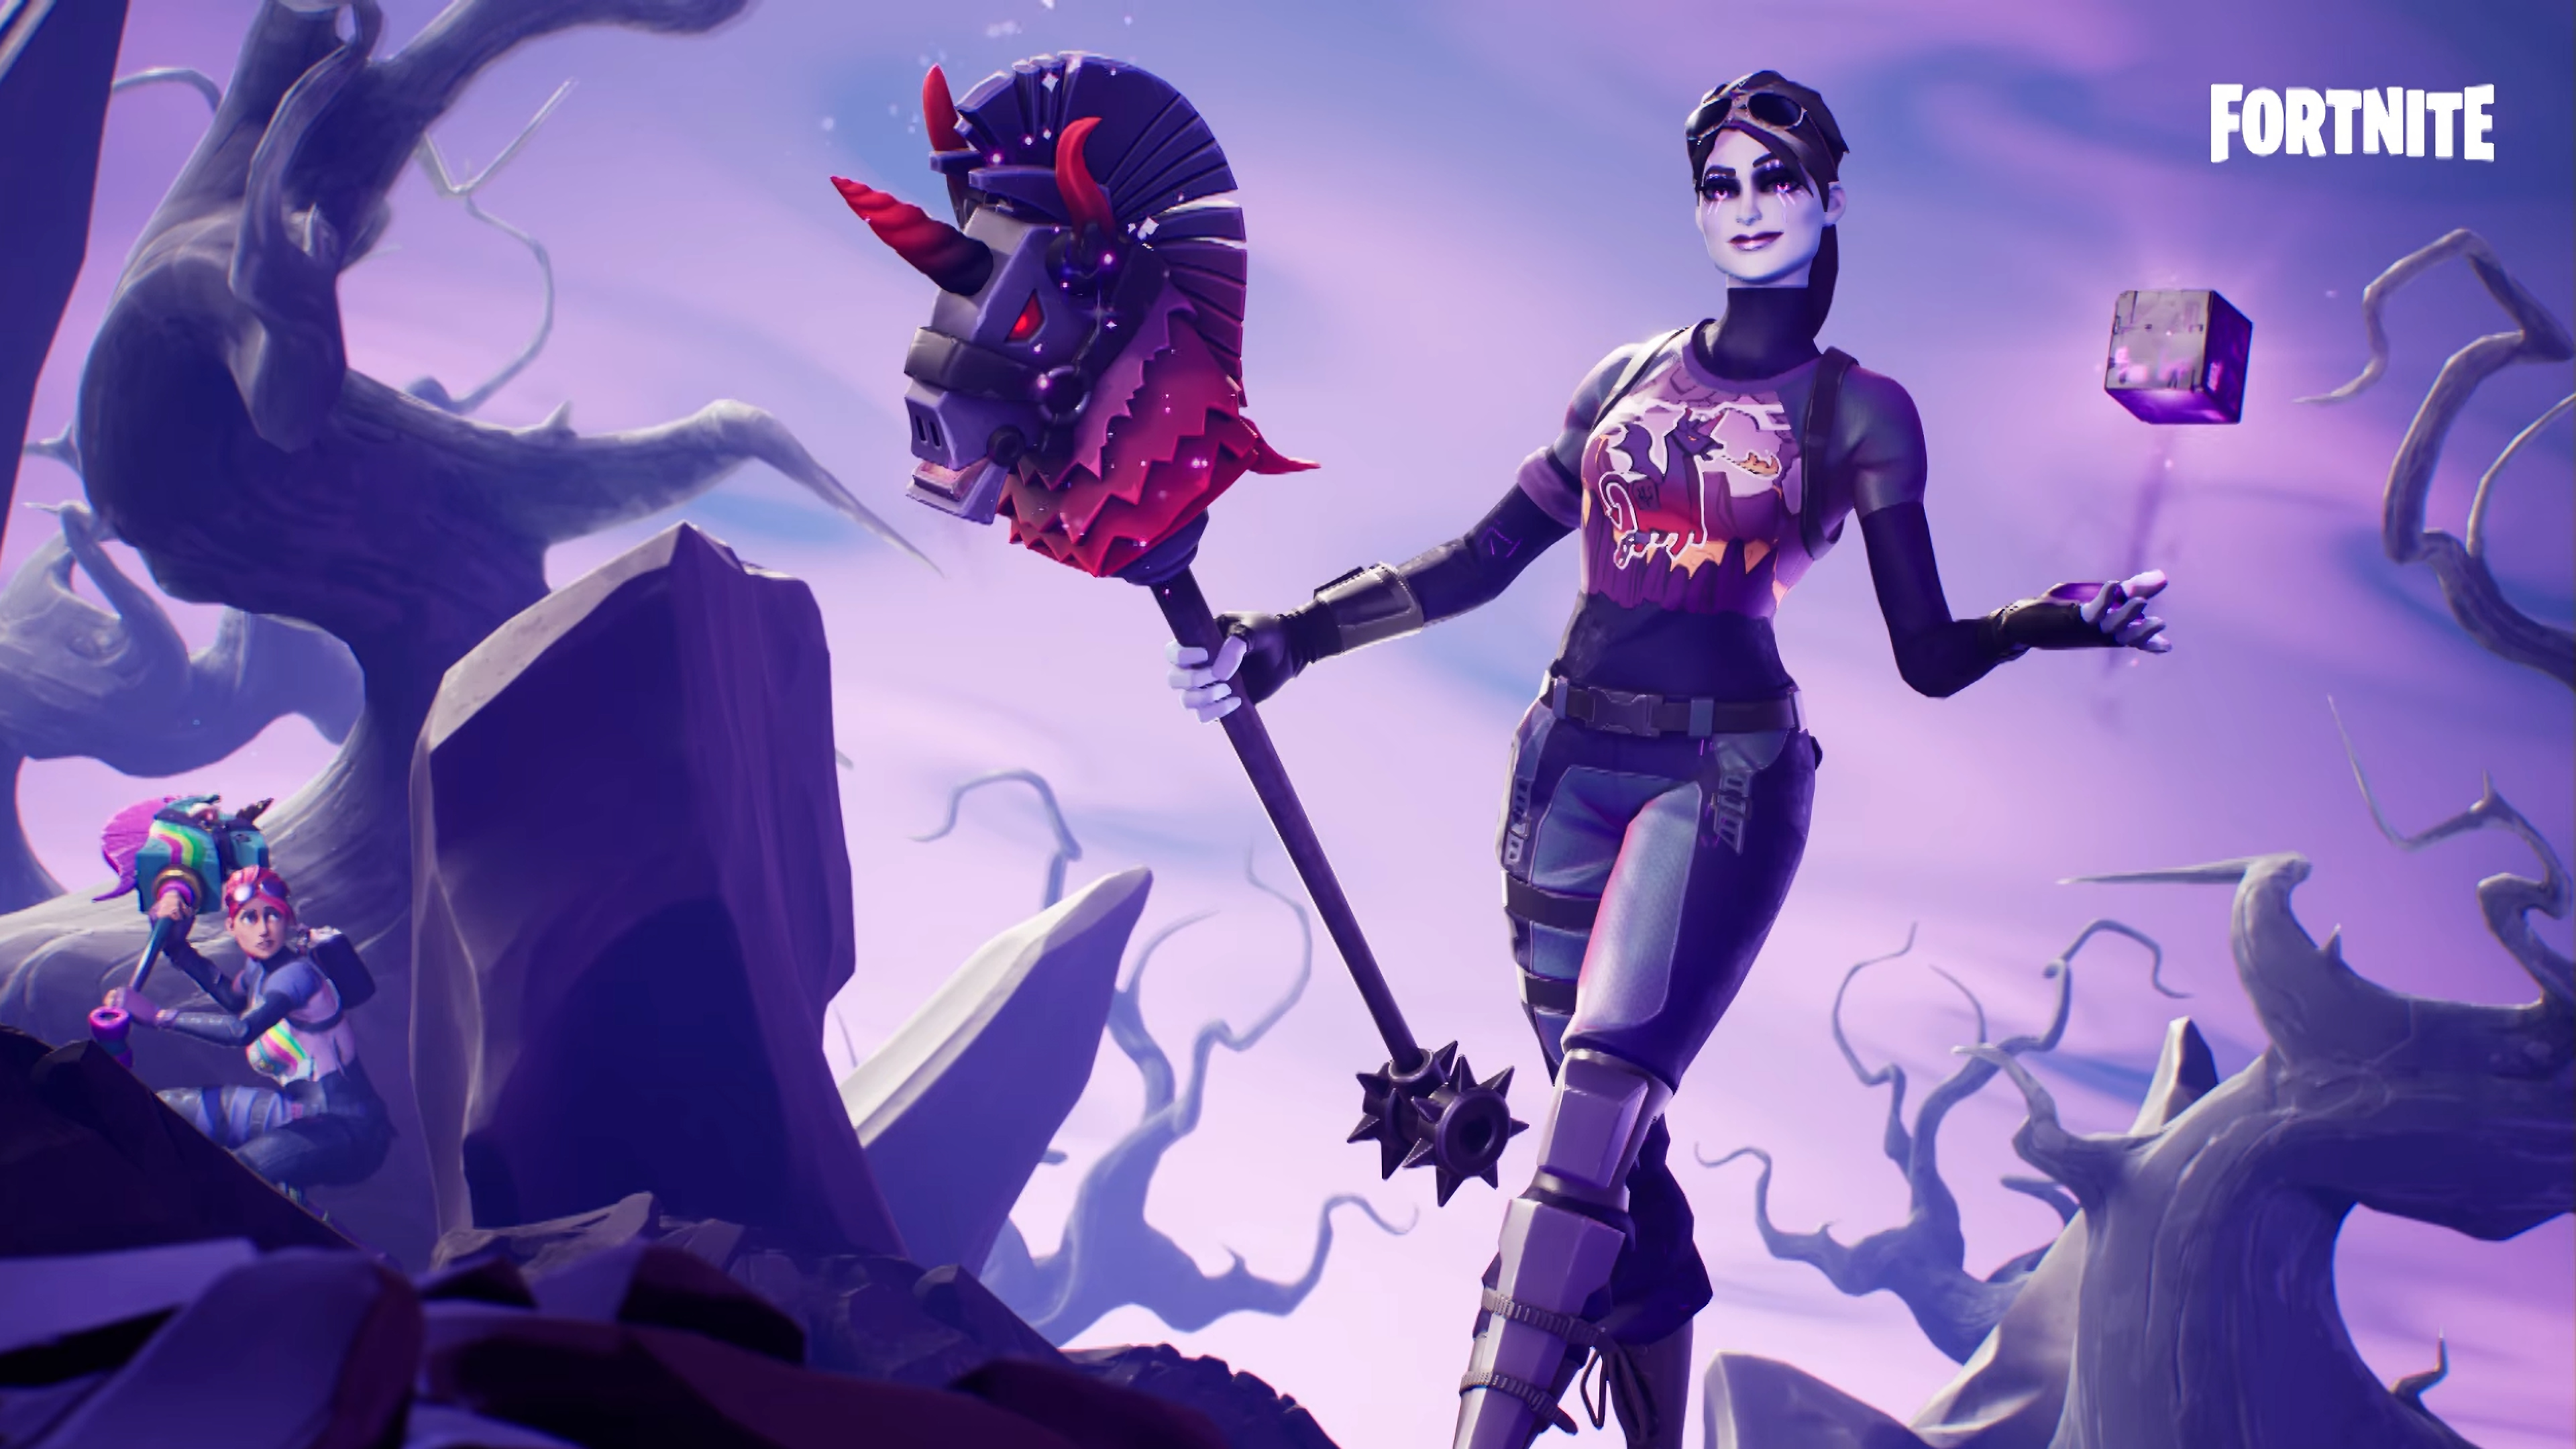 35 Dark Bomber Fortnite Wallpapers On Wallpapersafari